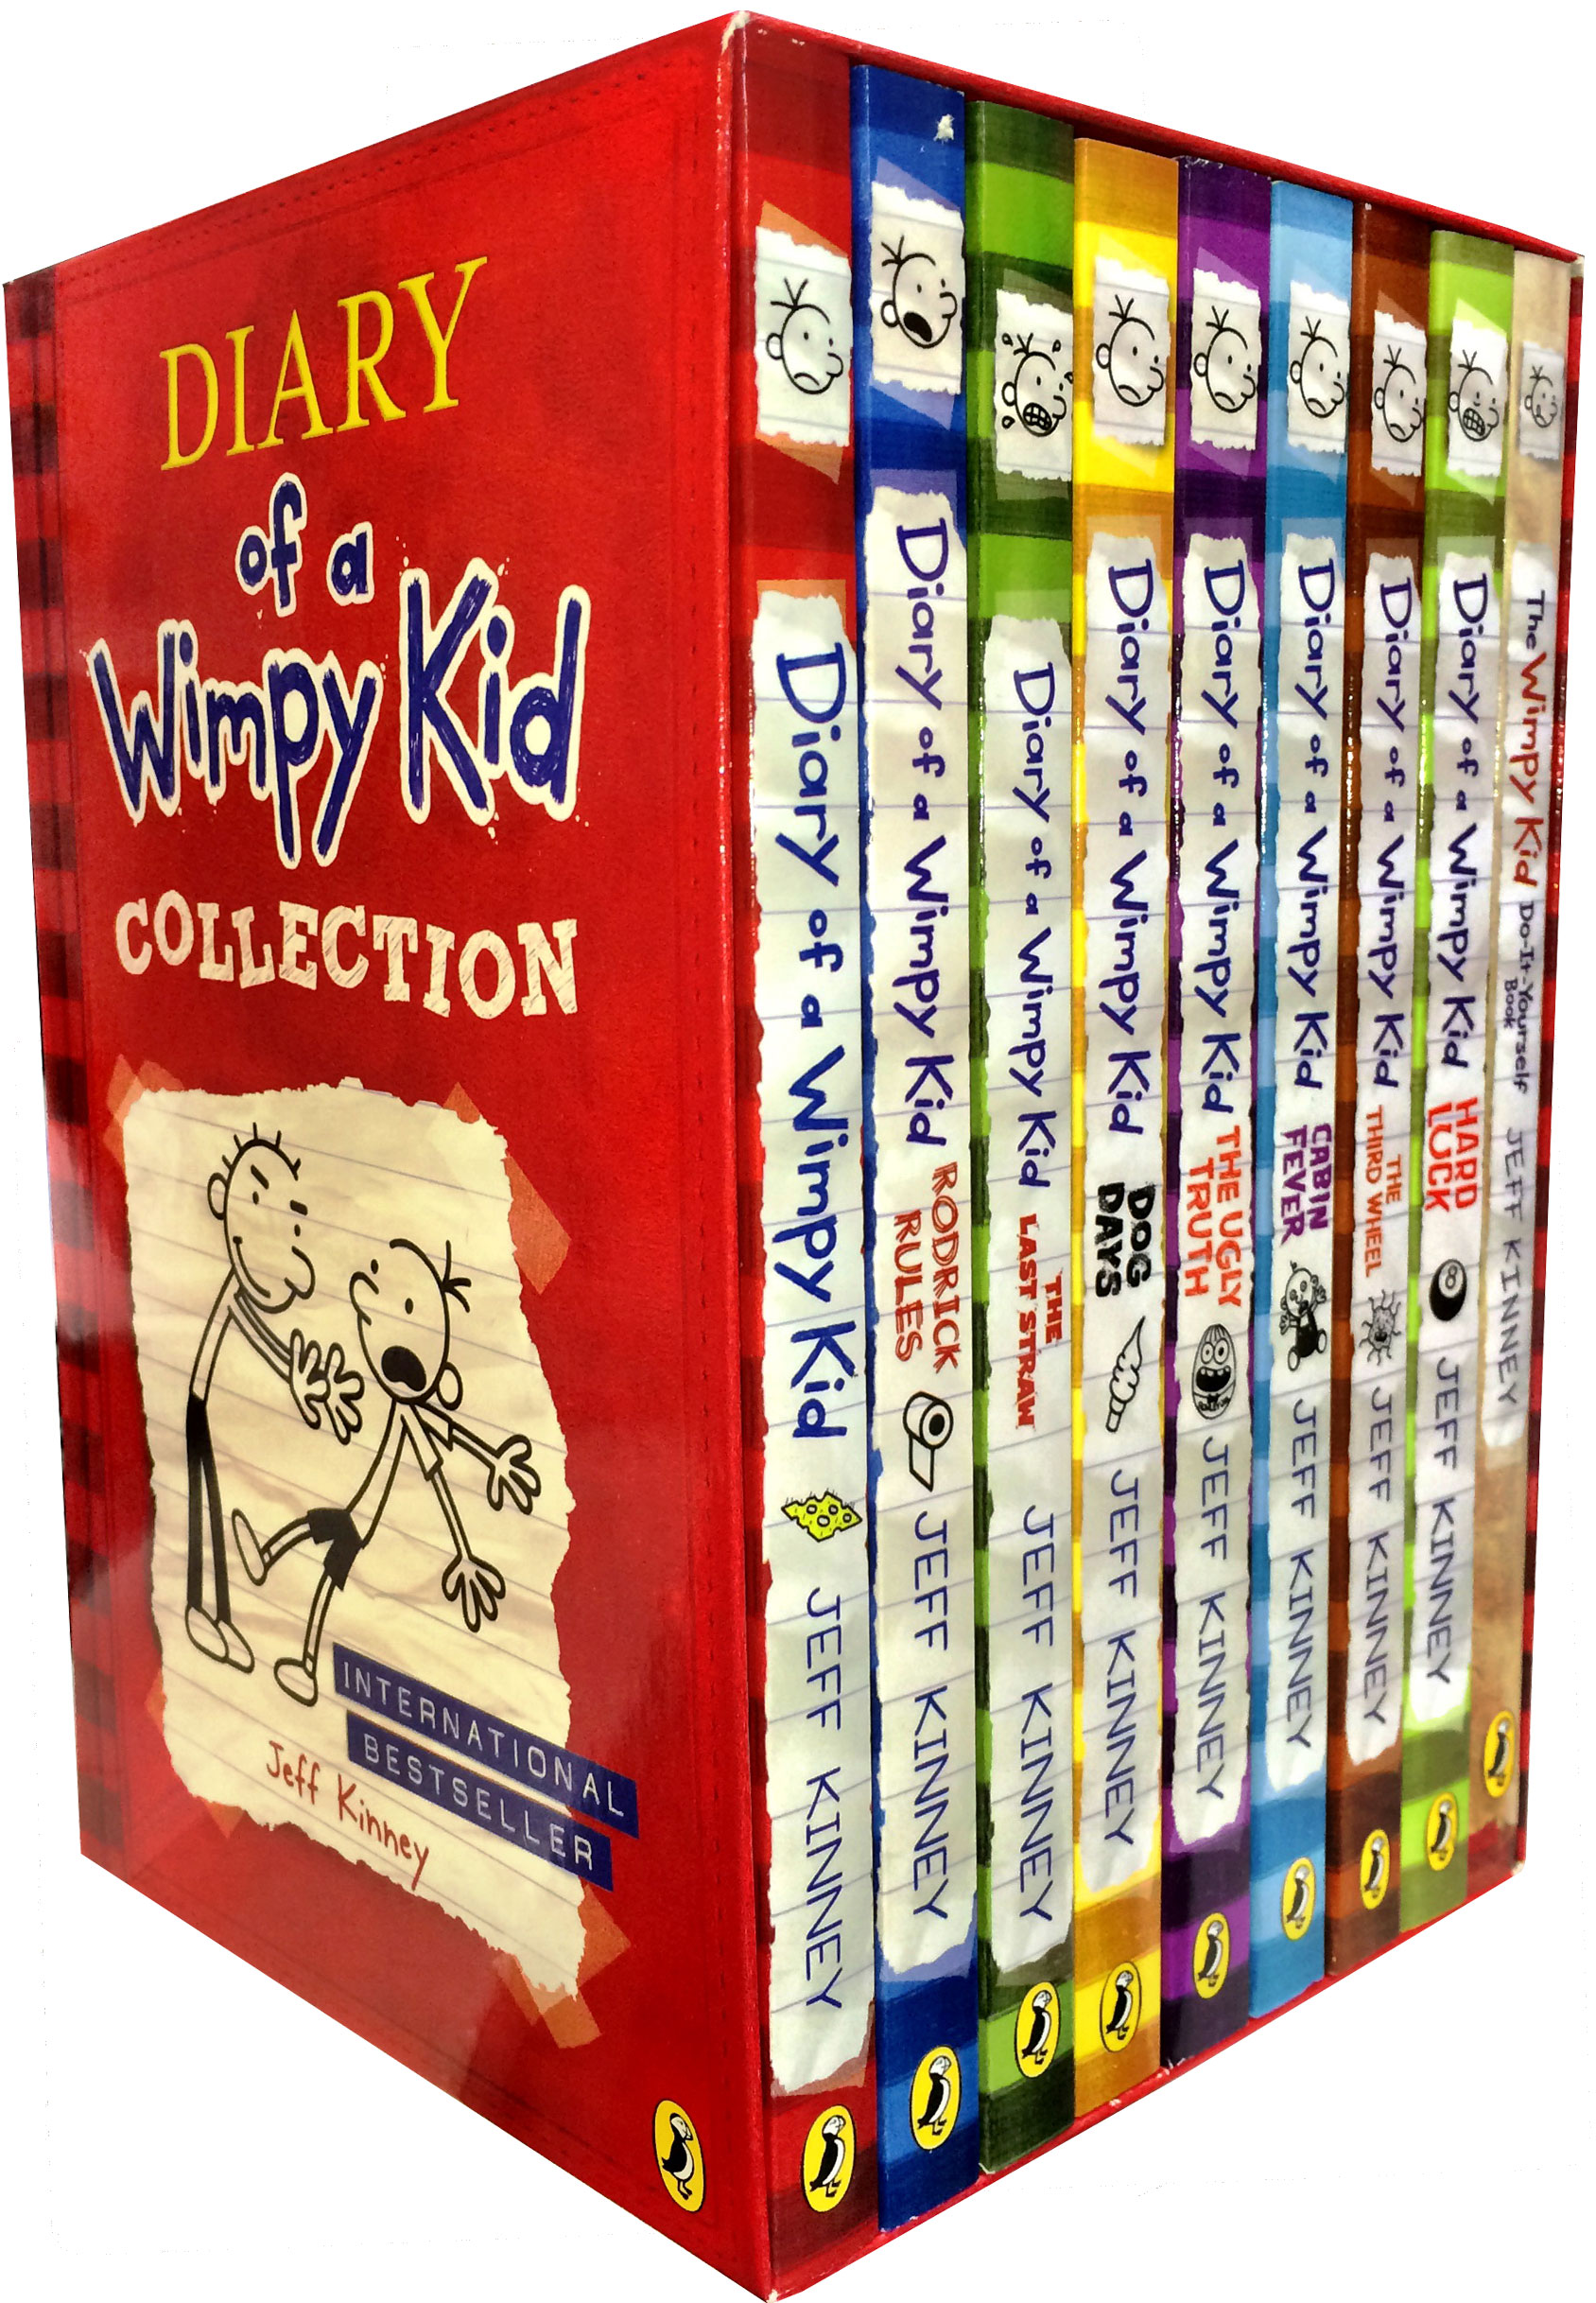 Of a wimpy kid set 12 books 1 11 plus movie diary jeff kinney no box diary of a wimpy kid set 12 books 1 11 plus movie diary jeff kinney no box solutioingenieria Images